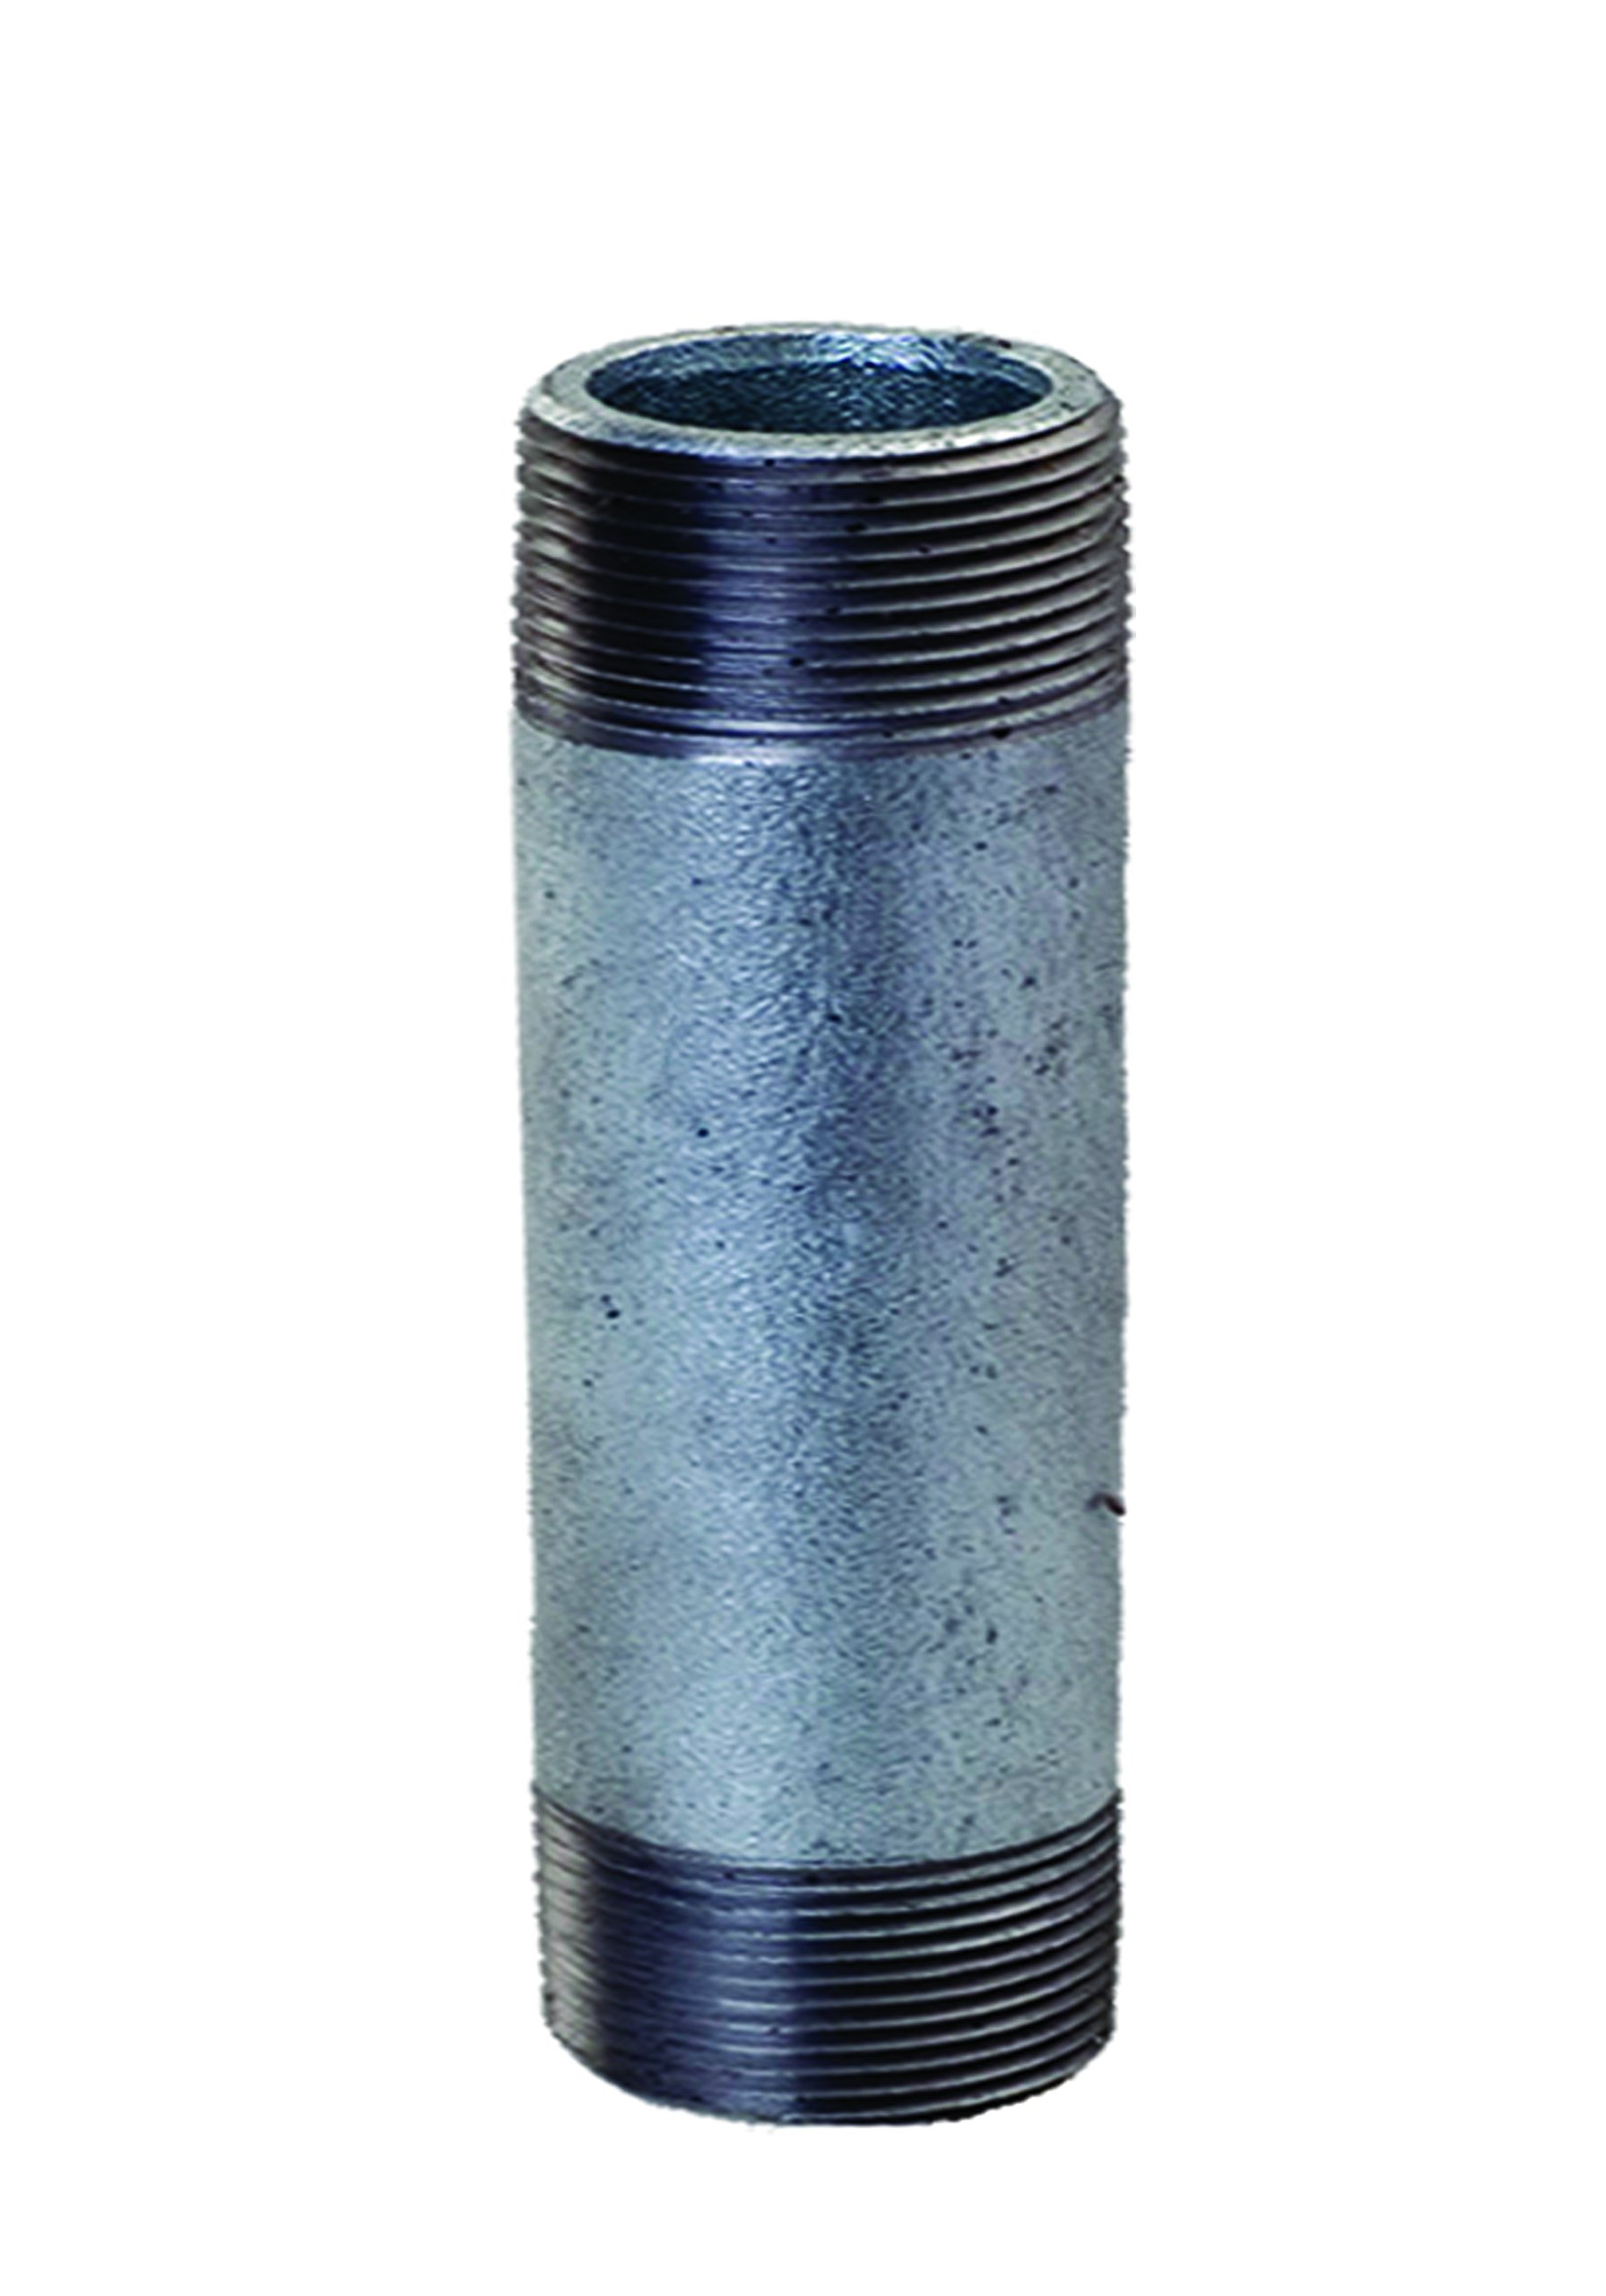 Everflow Supplies NPGL3012 12'' Long Galvanized Steel Nipple Pipe Fitting with 3'' Nominal Size Diameter